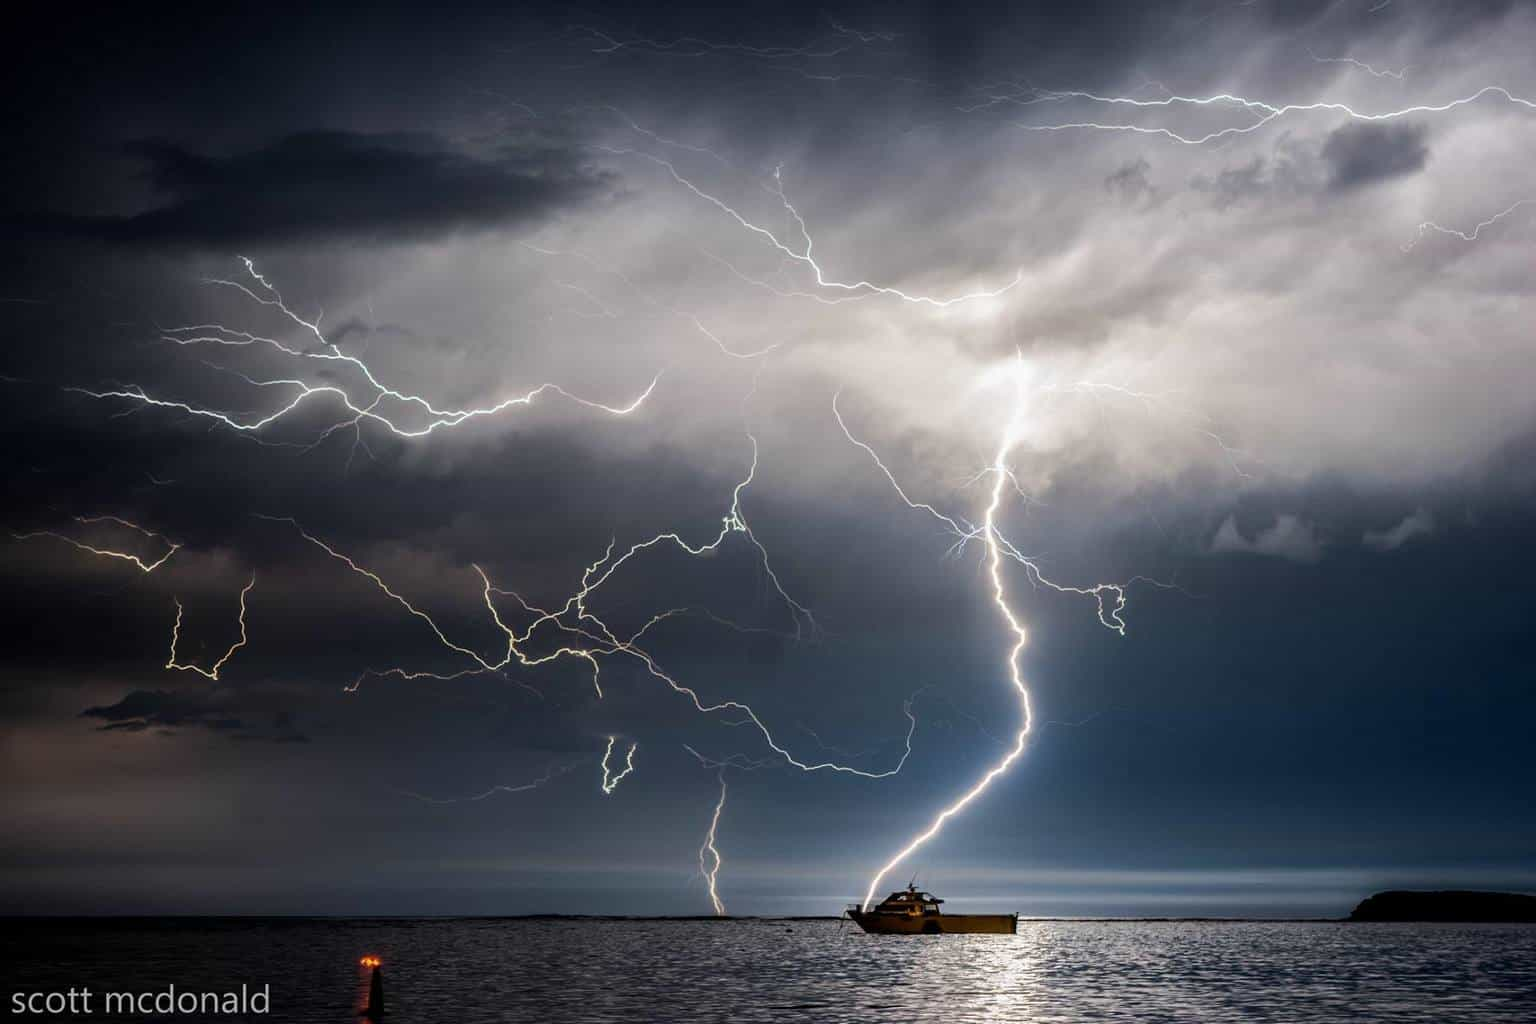 offshore storm was delivering some awesome bolts the other night including this one which almost looks like it struck the boat